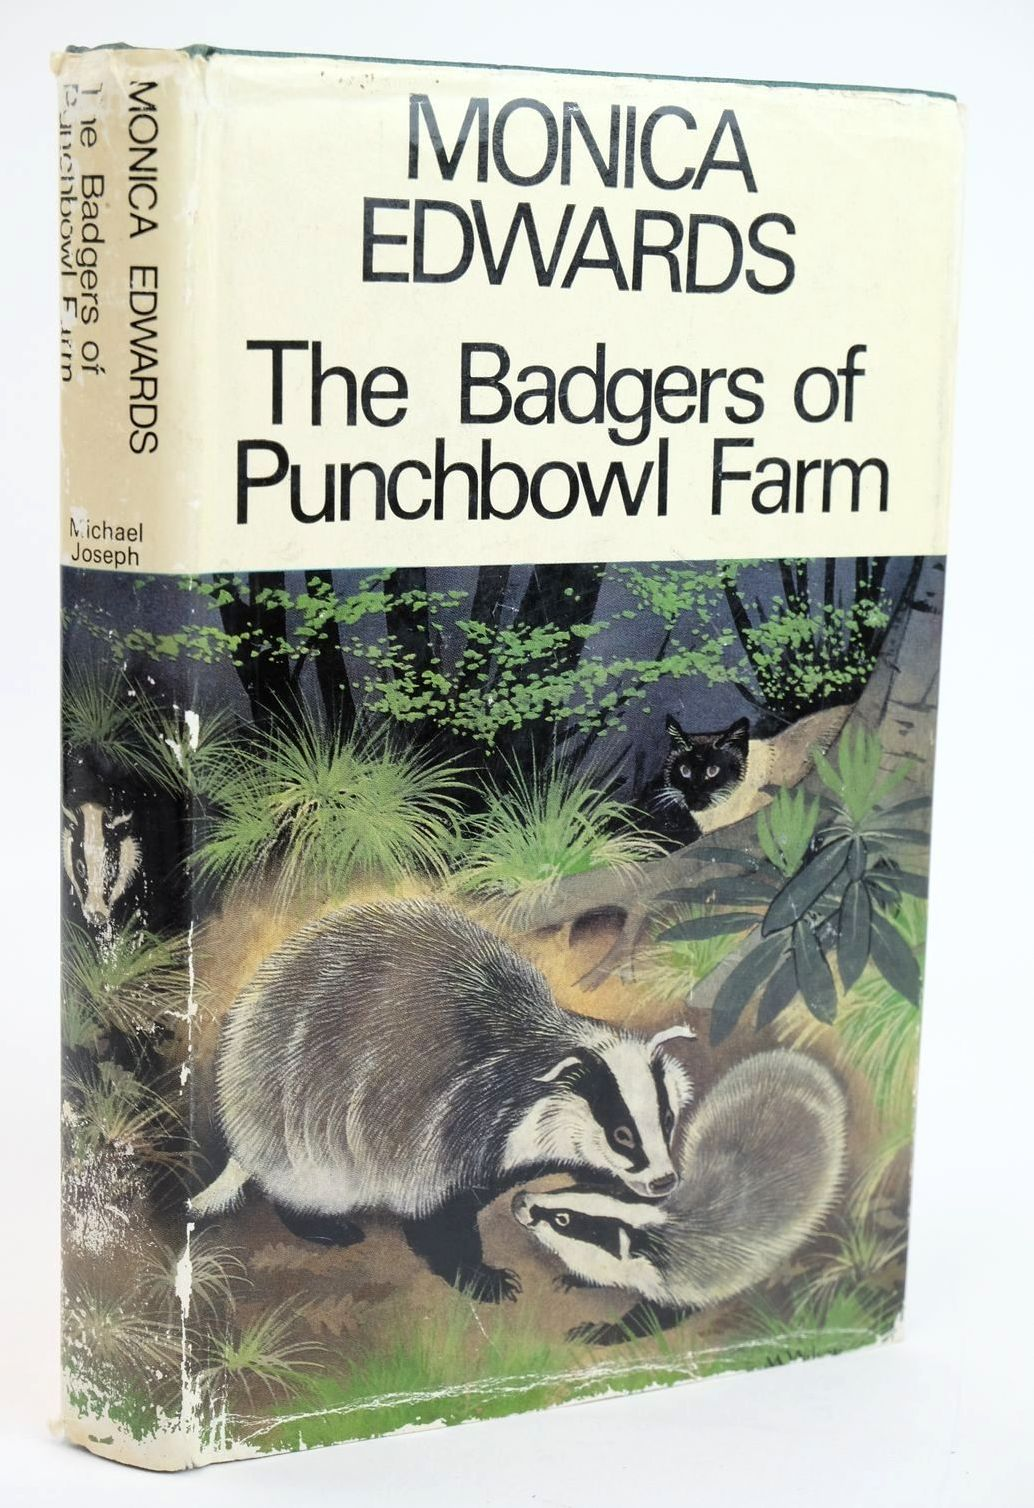 Photo of THE BADGERS OF PUNCHBOWL FARM written by Edwards, Monica published by Michael Joseph (STOCK CODE: 1319353)  for sale by Stella & Rose's Books